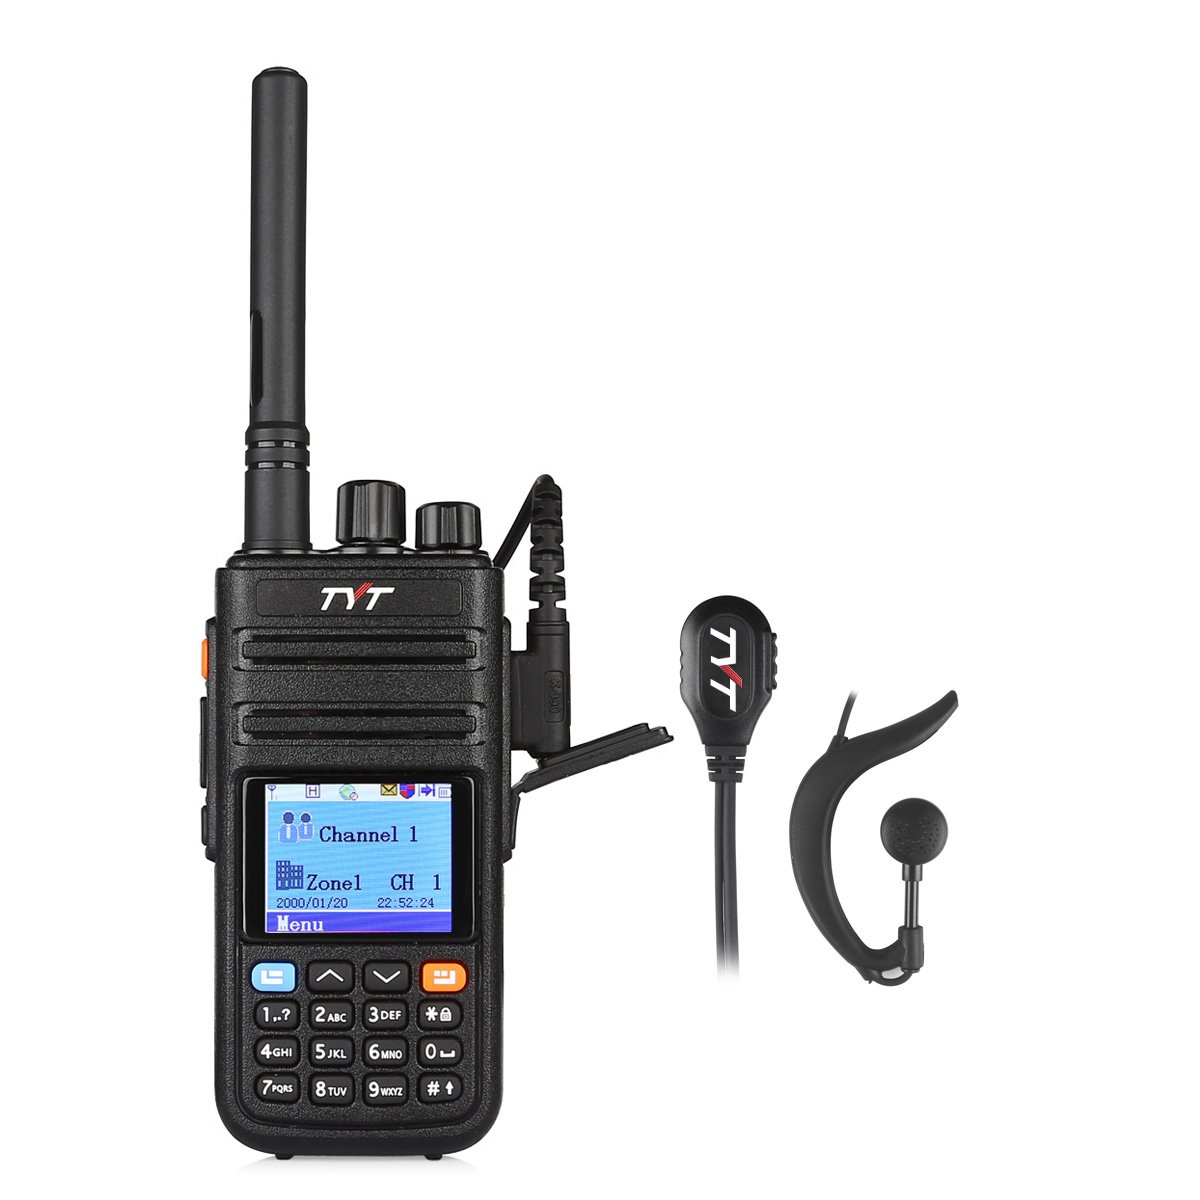 TYT Tytera Upgraded MD-380G DMR Digital Radio, with GPS Function! UHF 400-480MHz Two-Way Radio, Walkie Talkie Compatible with Mototrbo, Transceiver with 2 Antenna & Programming Cable & Earpiece